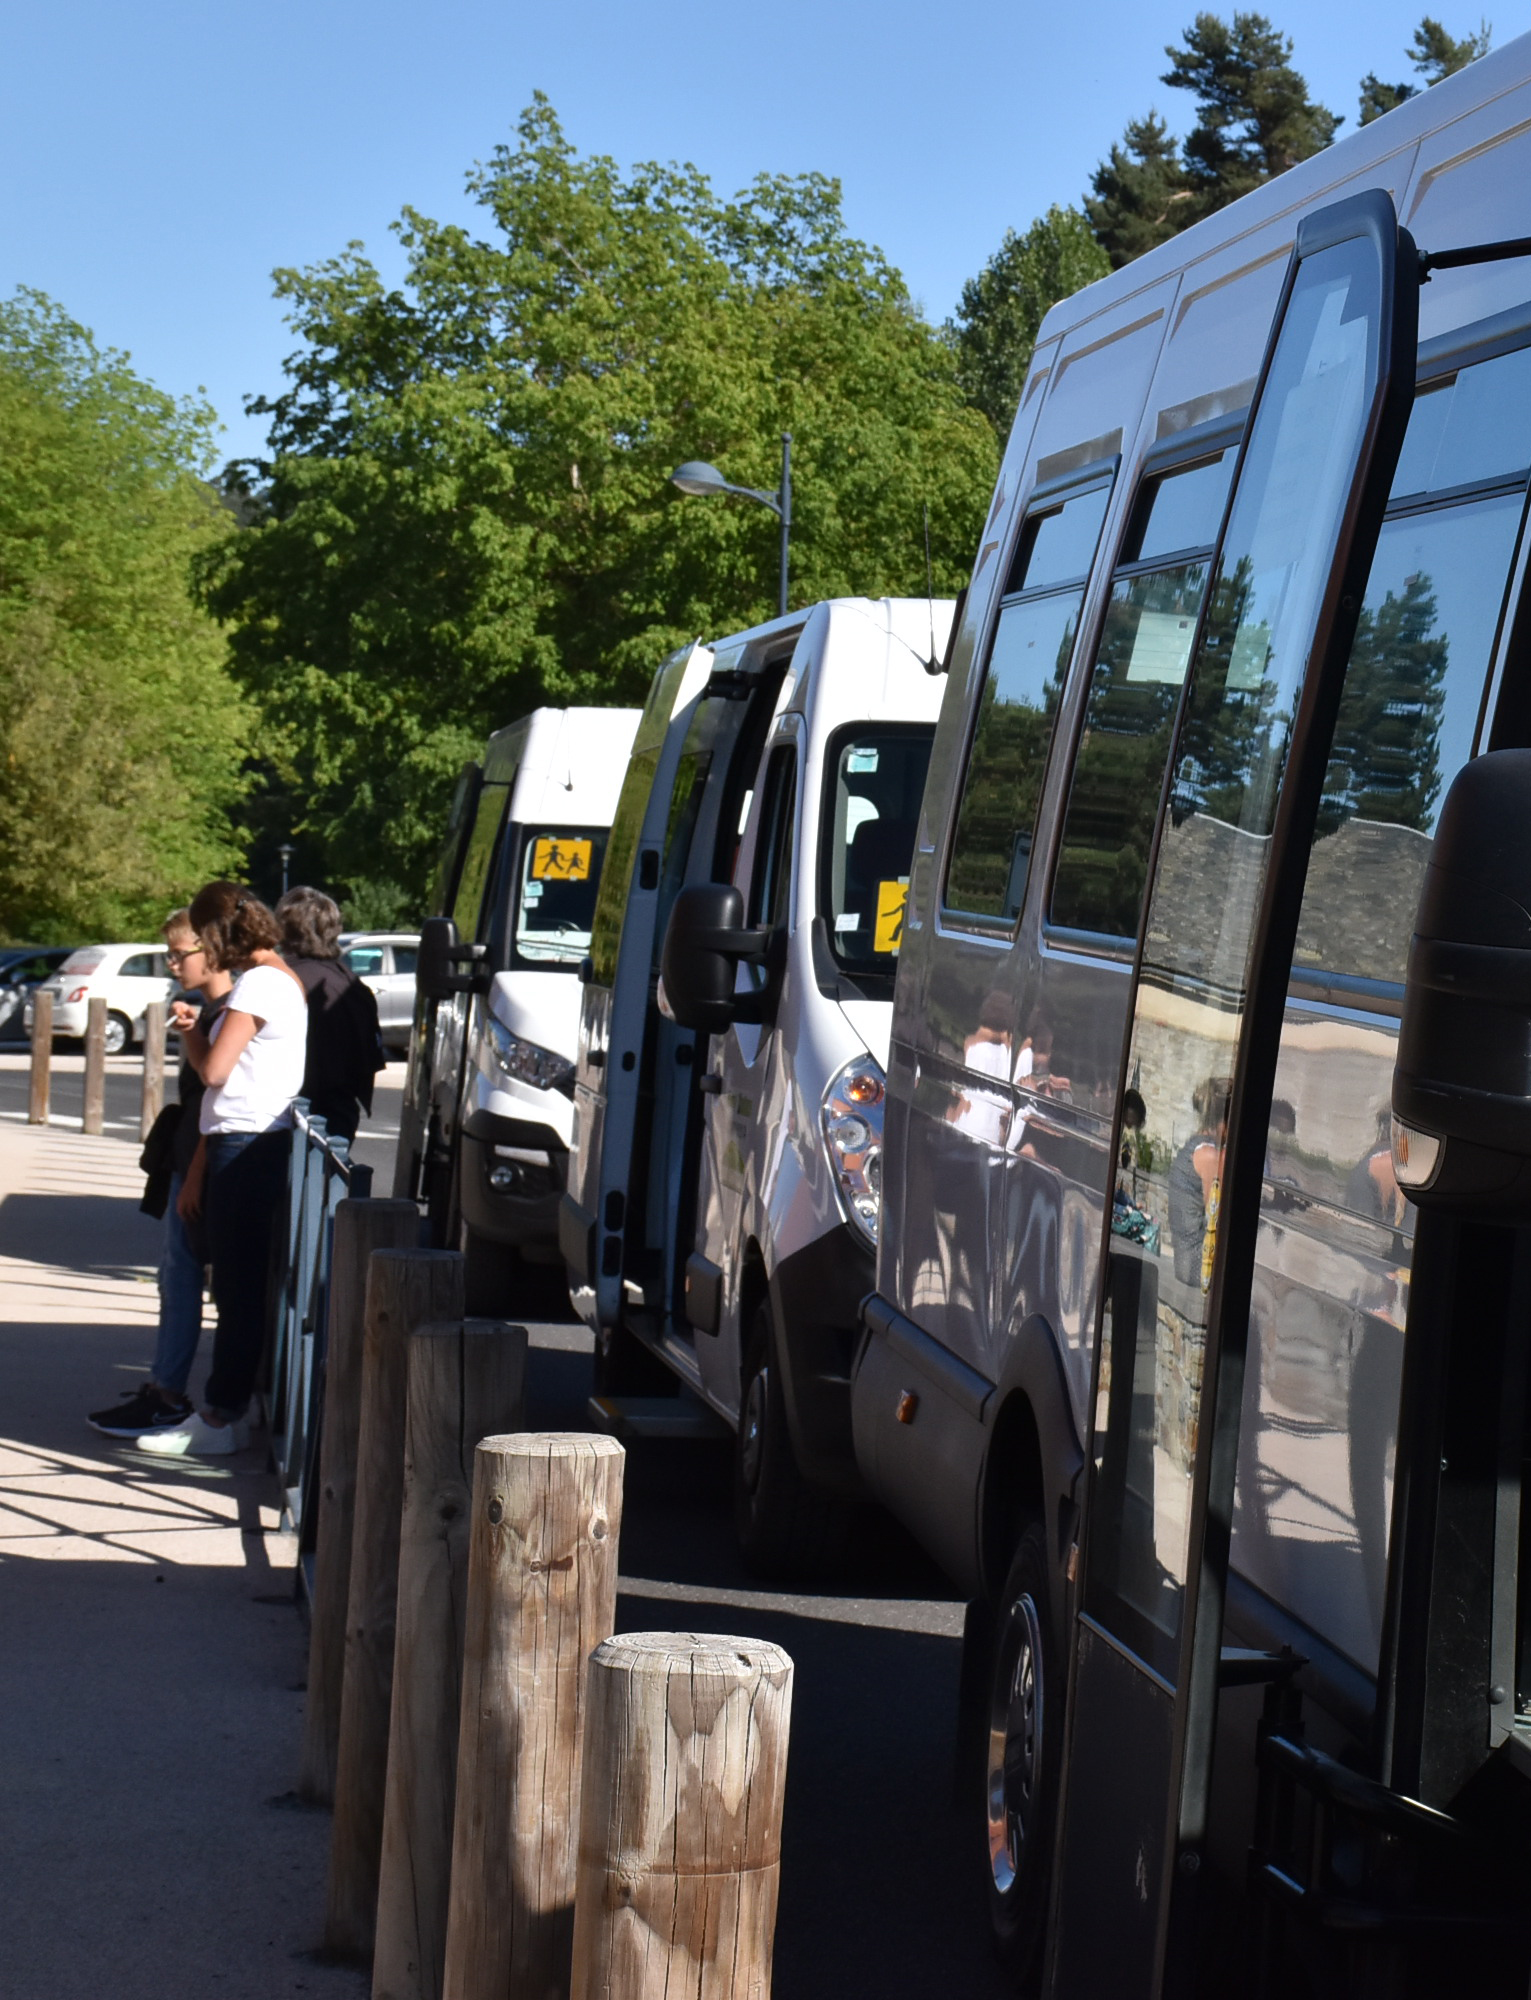 transports scolaires 2020-2021